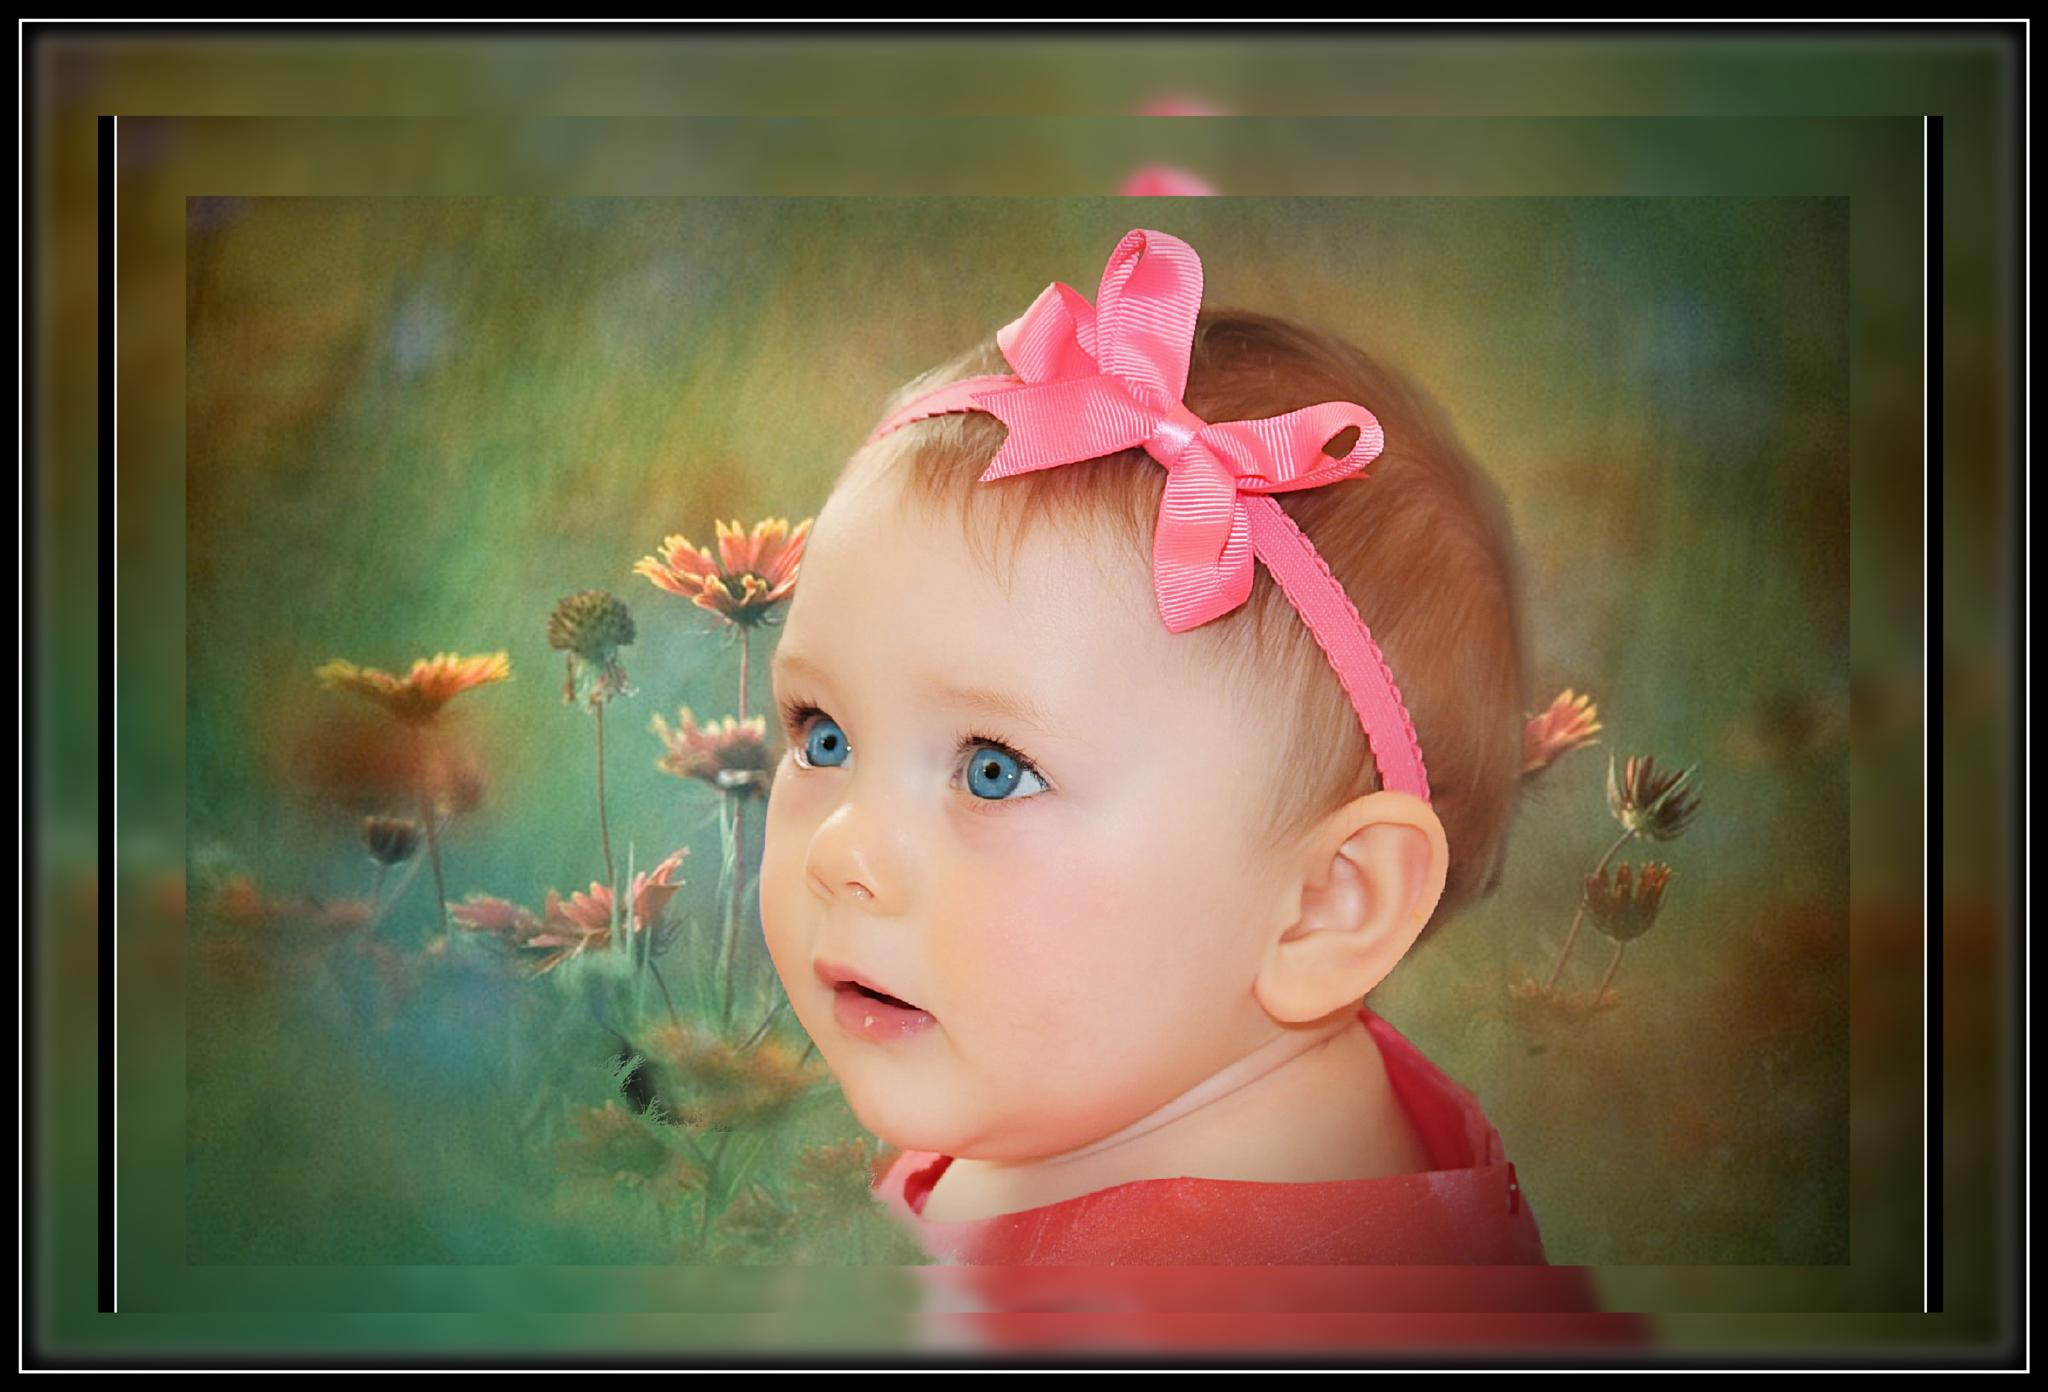 Our Miracle Princess by Trudy Hoerr